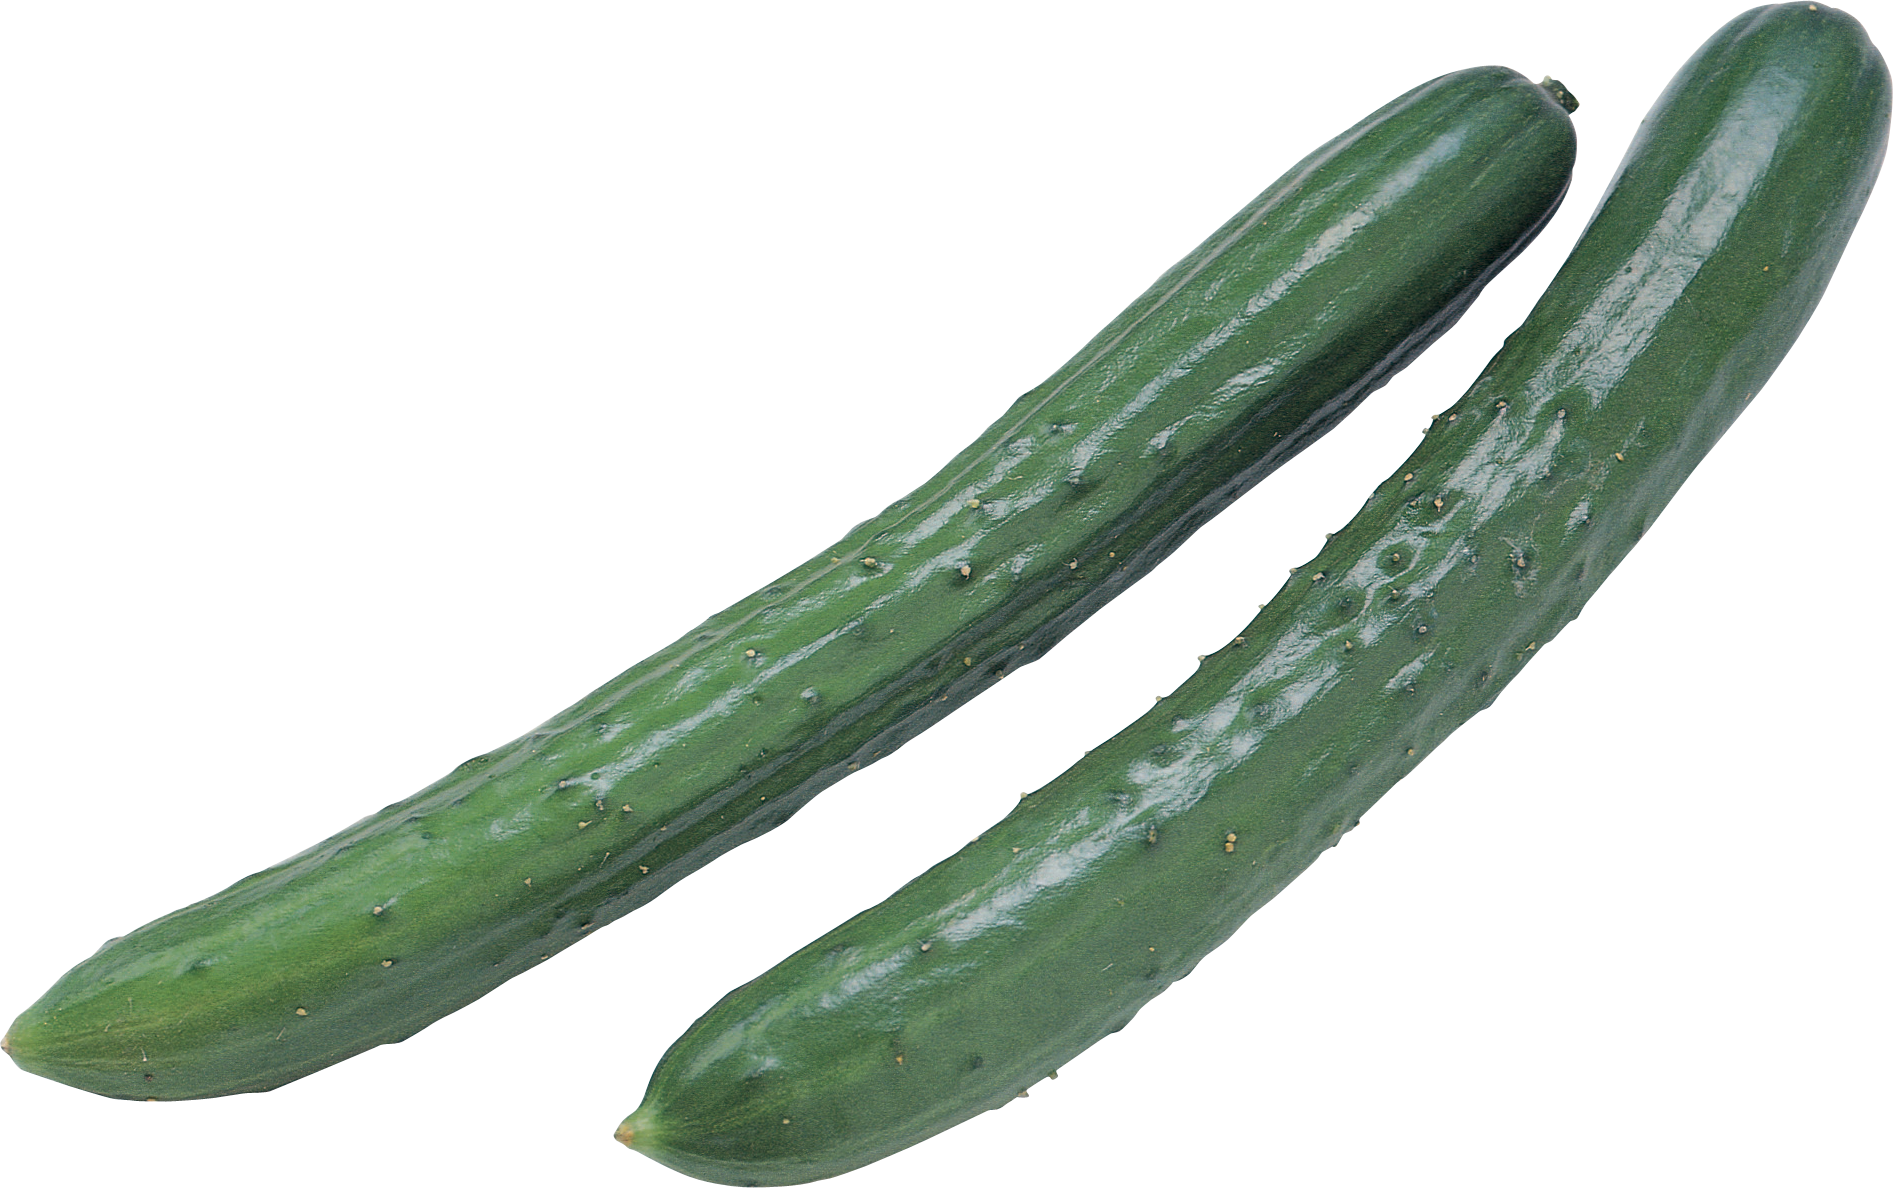 Zucchini clipart vegetable. Cucumber png images free